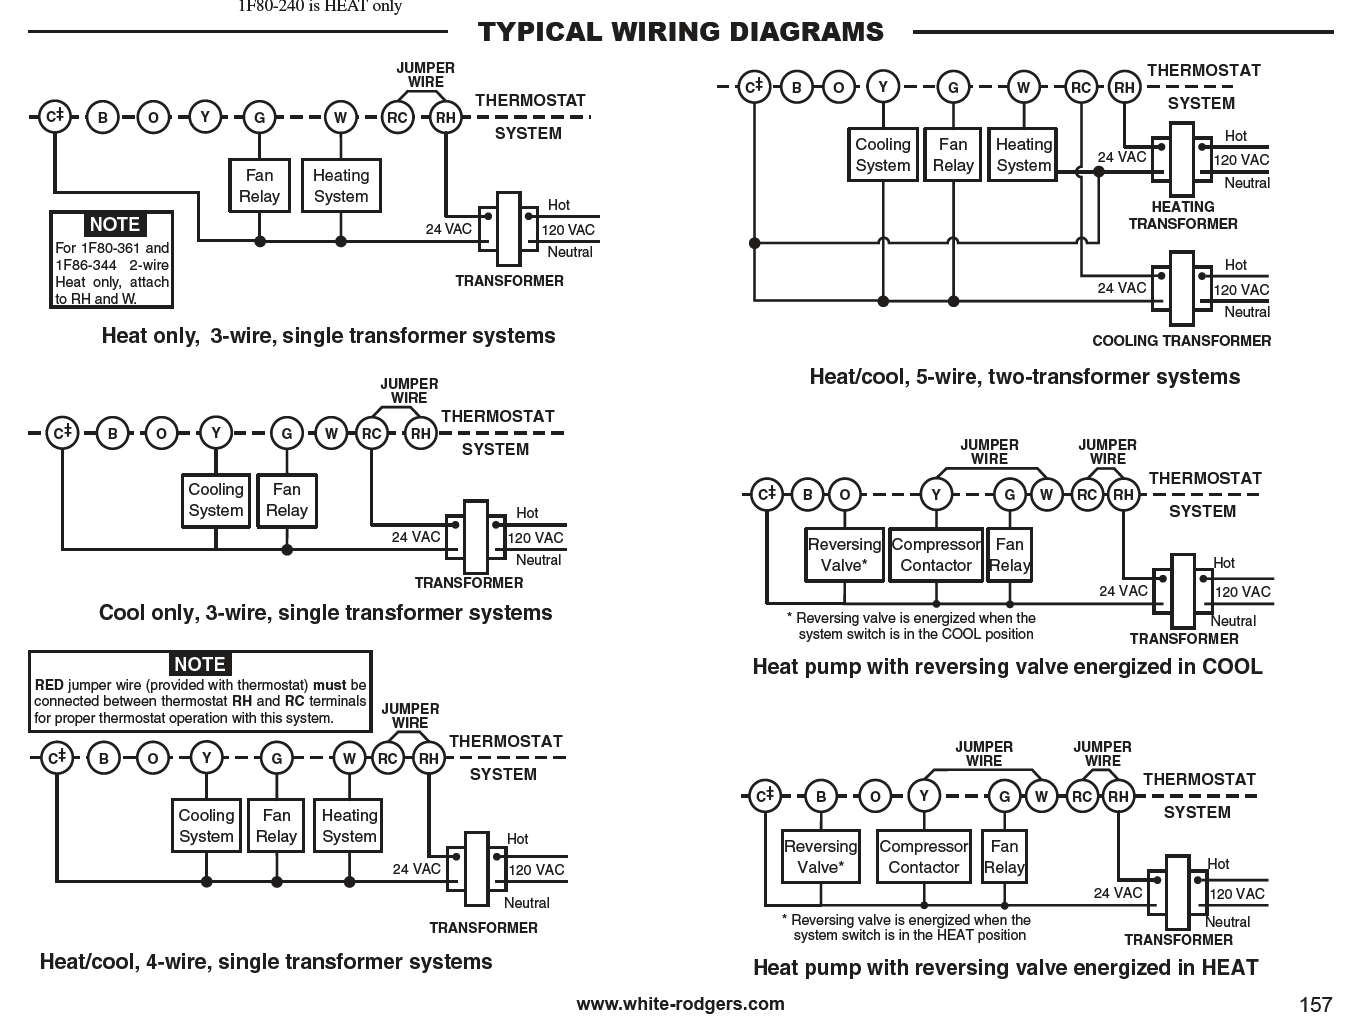 Baseboard Heater Wiring Diagram White Rodgers Thermostat An Electric How Wire A Room Rh Inspectapedia Com 2 Heaters To 1